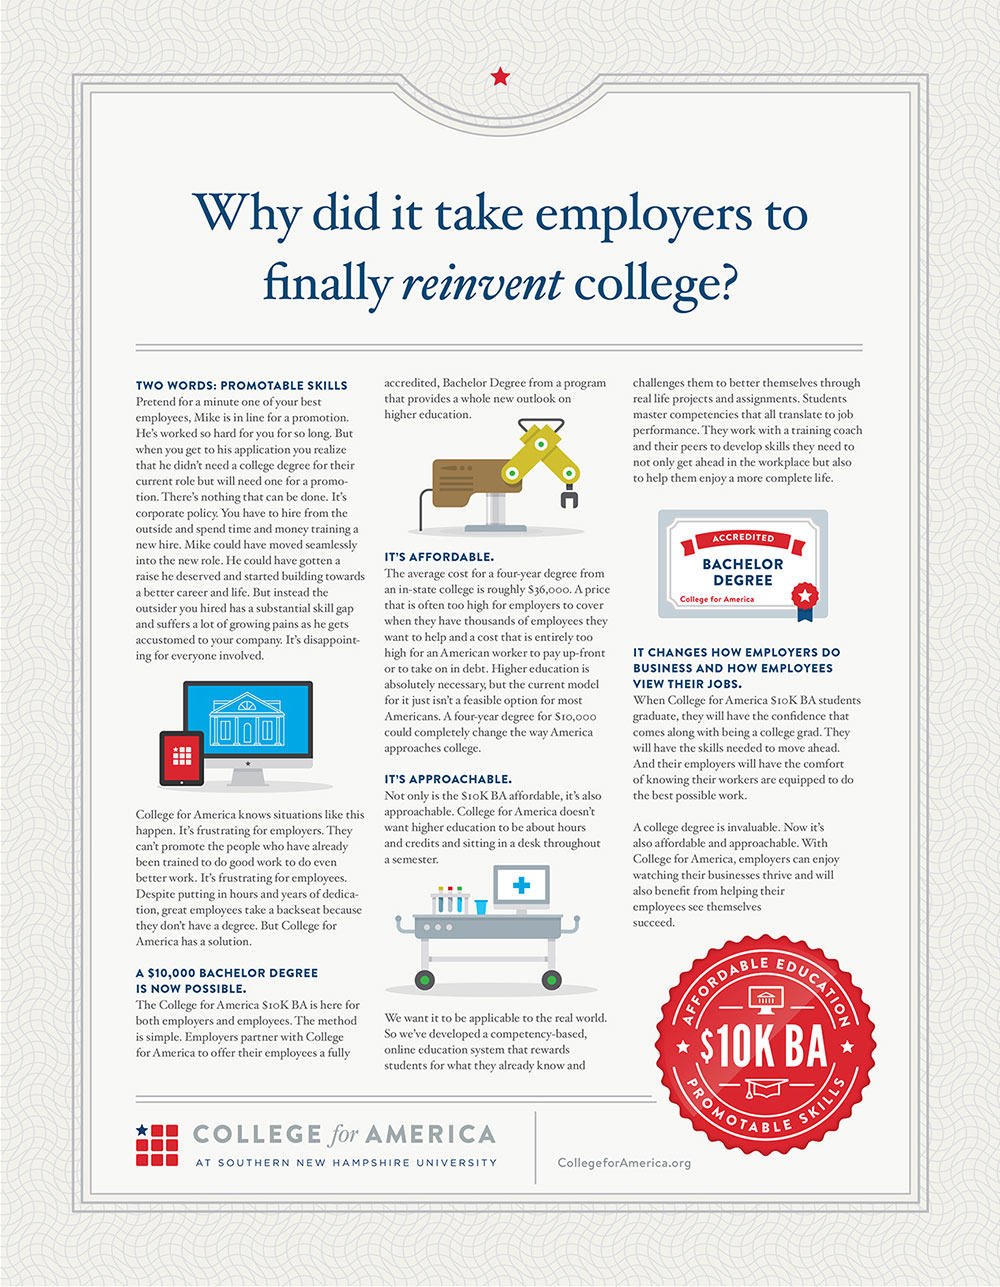 College of America - Why did it take employers to finally reinvent college?